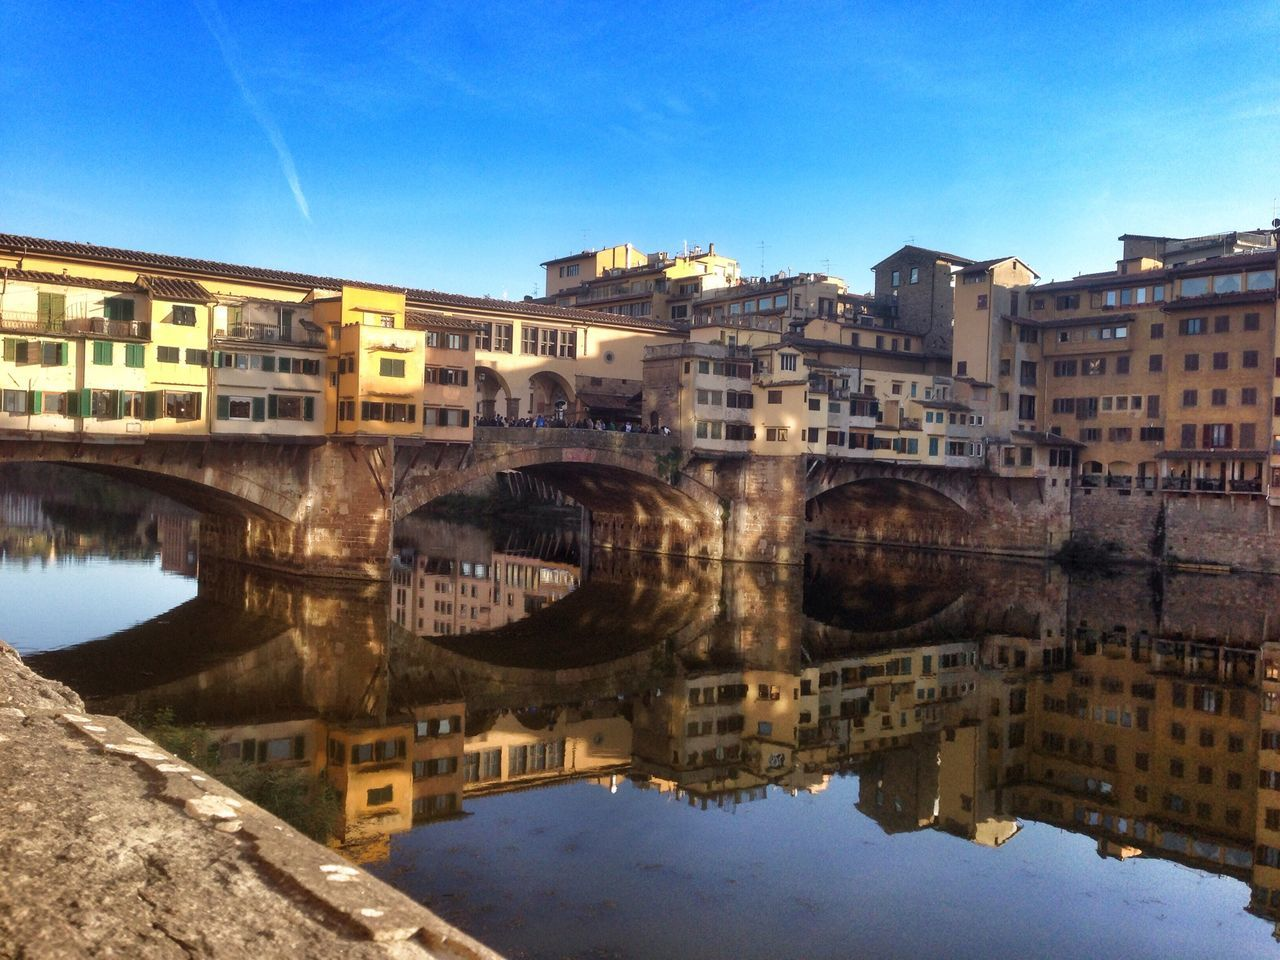 Florence Ponte Vecchio Bridge Reflection Water Reflections Tuscany Italy Sightseeing Traveling